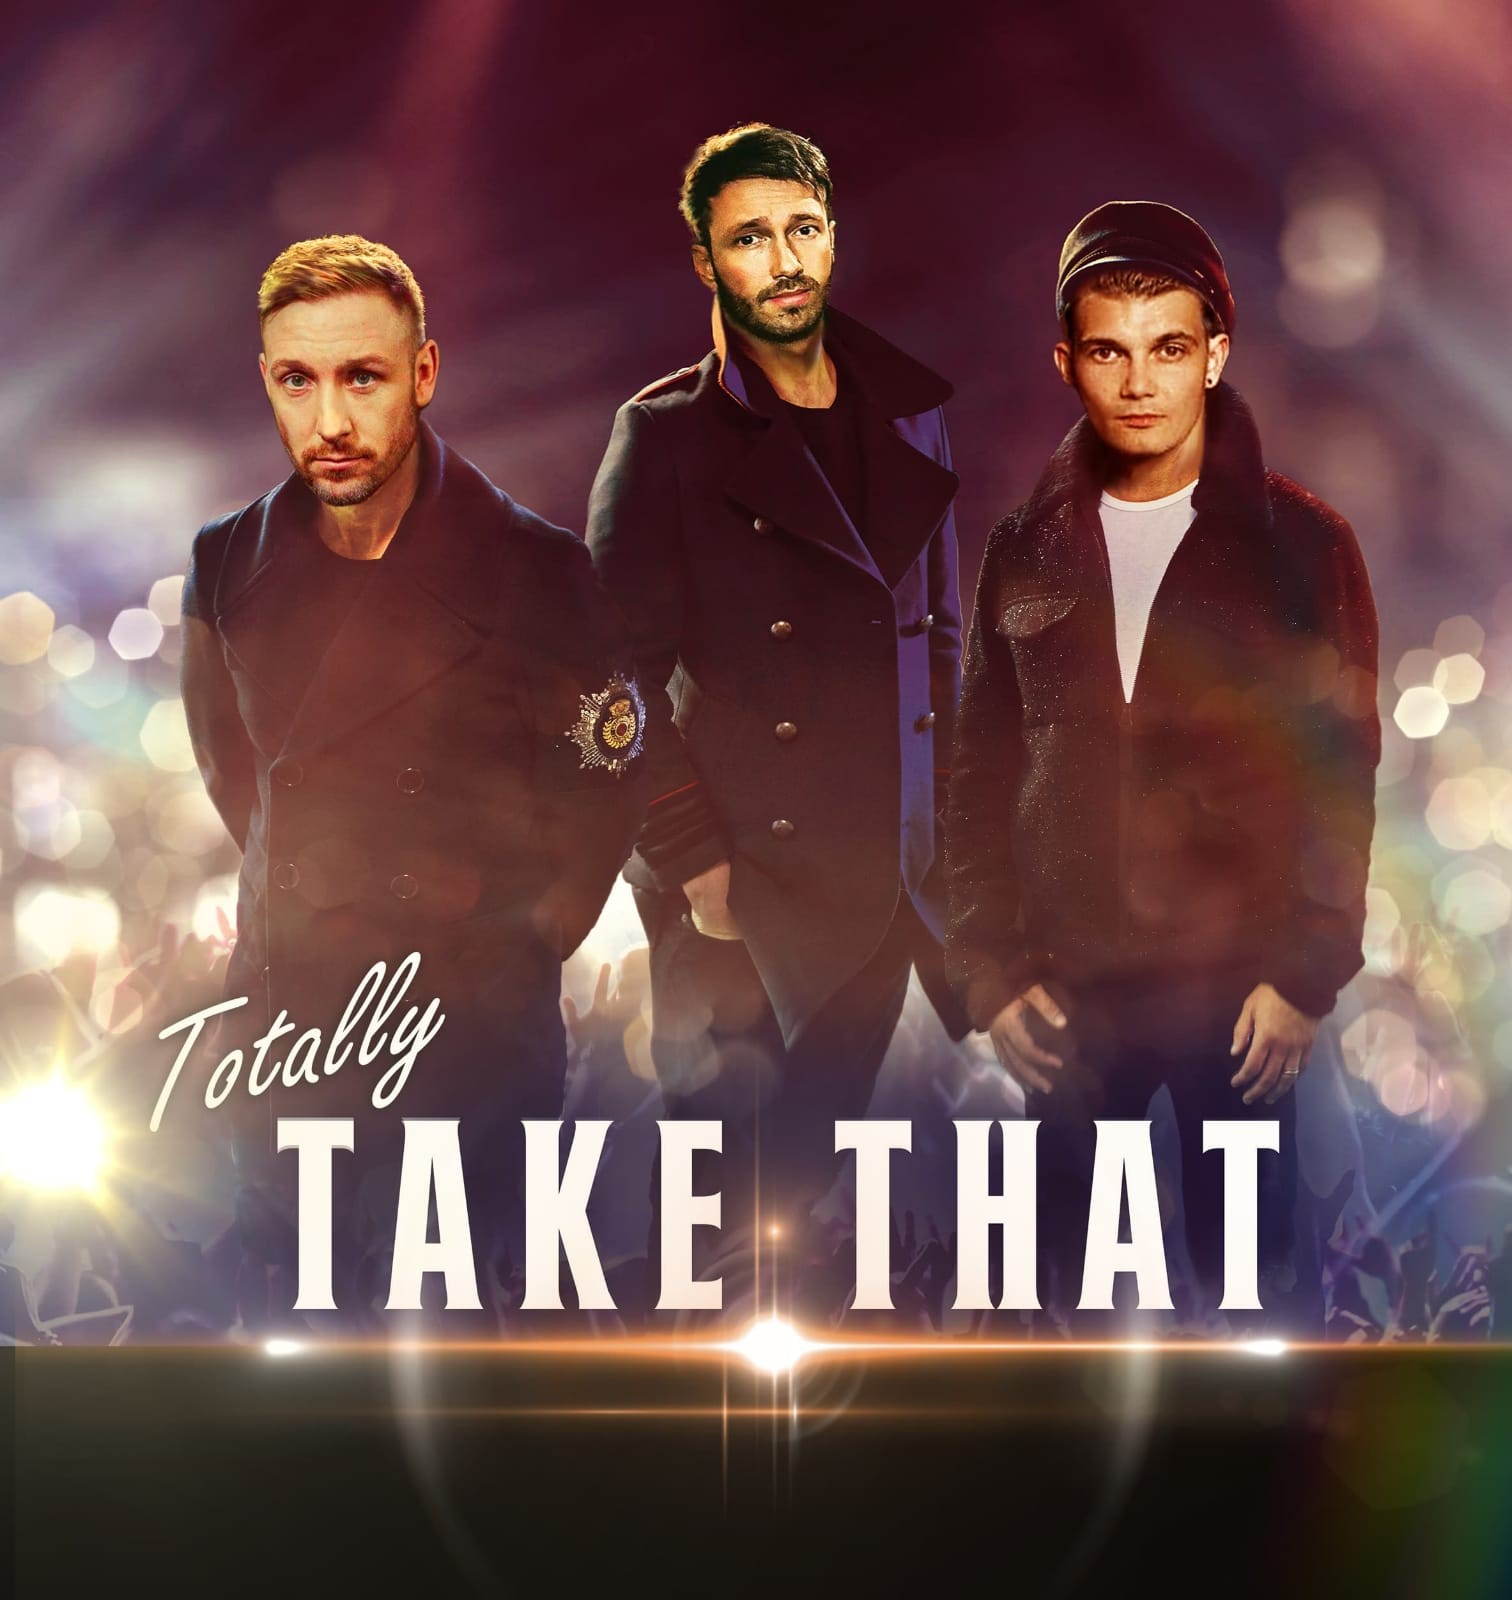 take that tribute uk1 xsp.co.uk.jpg